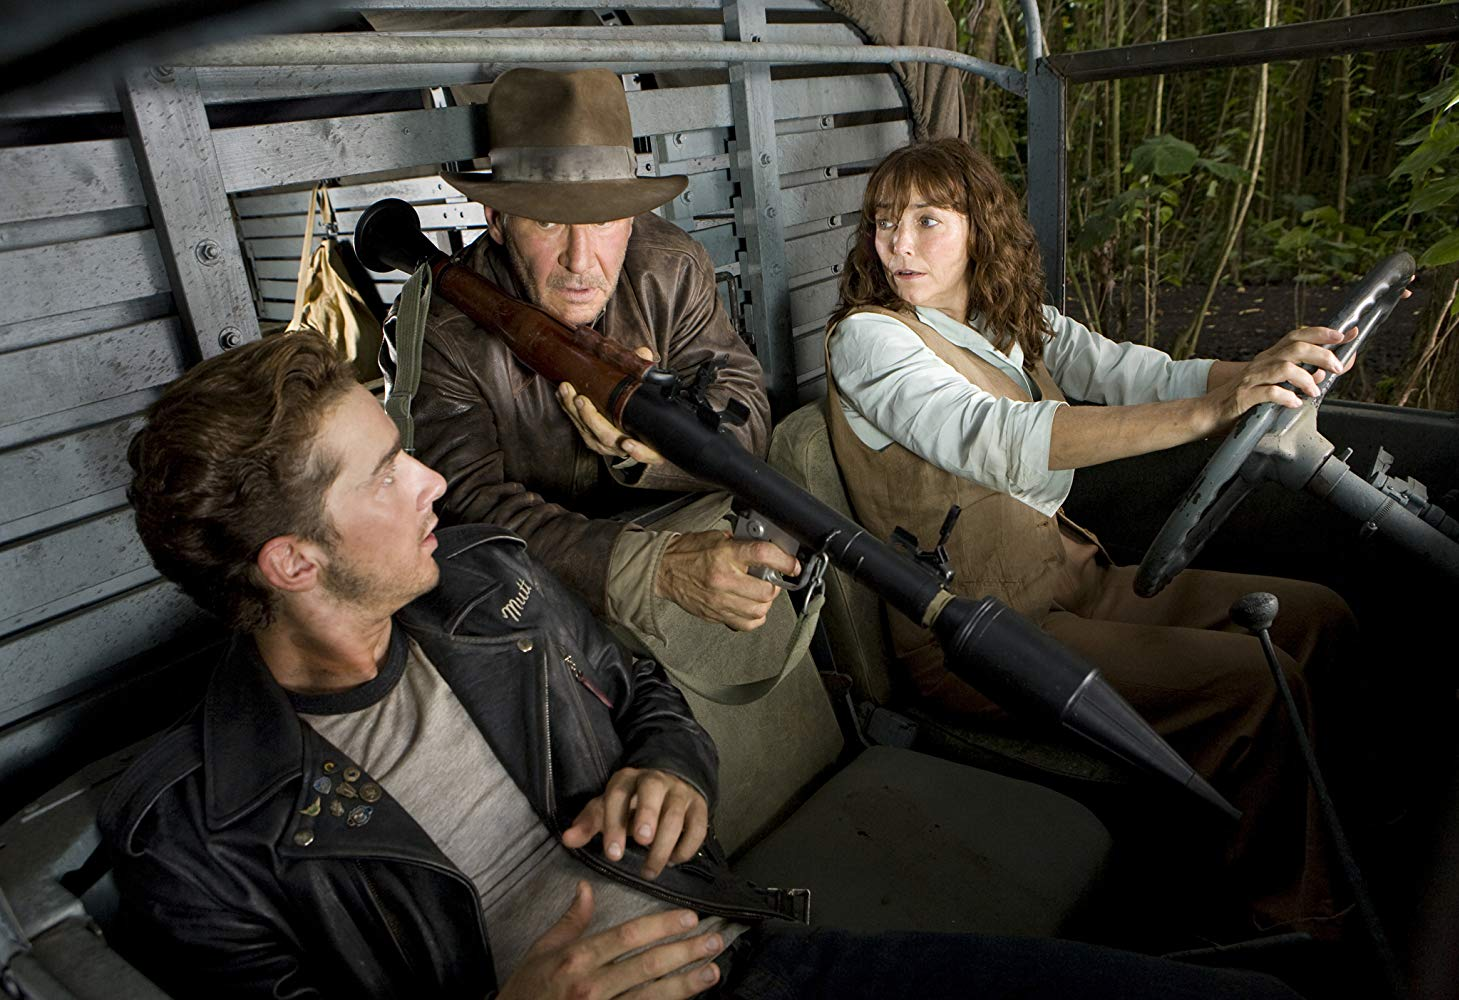 Shia LaBeouf, Harrison Ford, Karen Allen in Indiana Jones and the Kingdom of the Crystal Skull (2008)